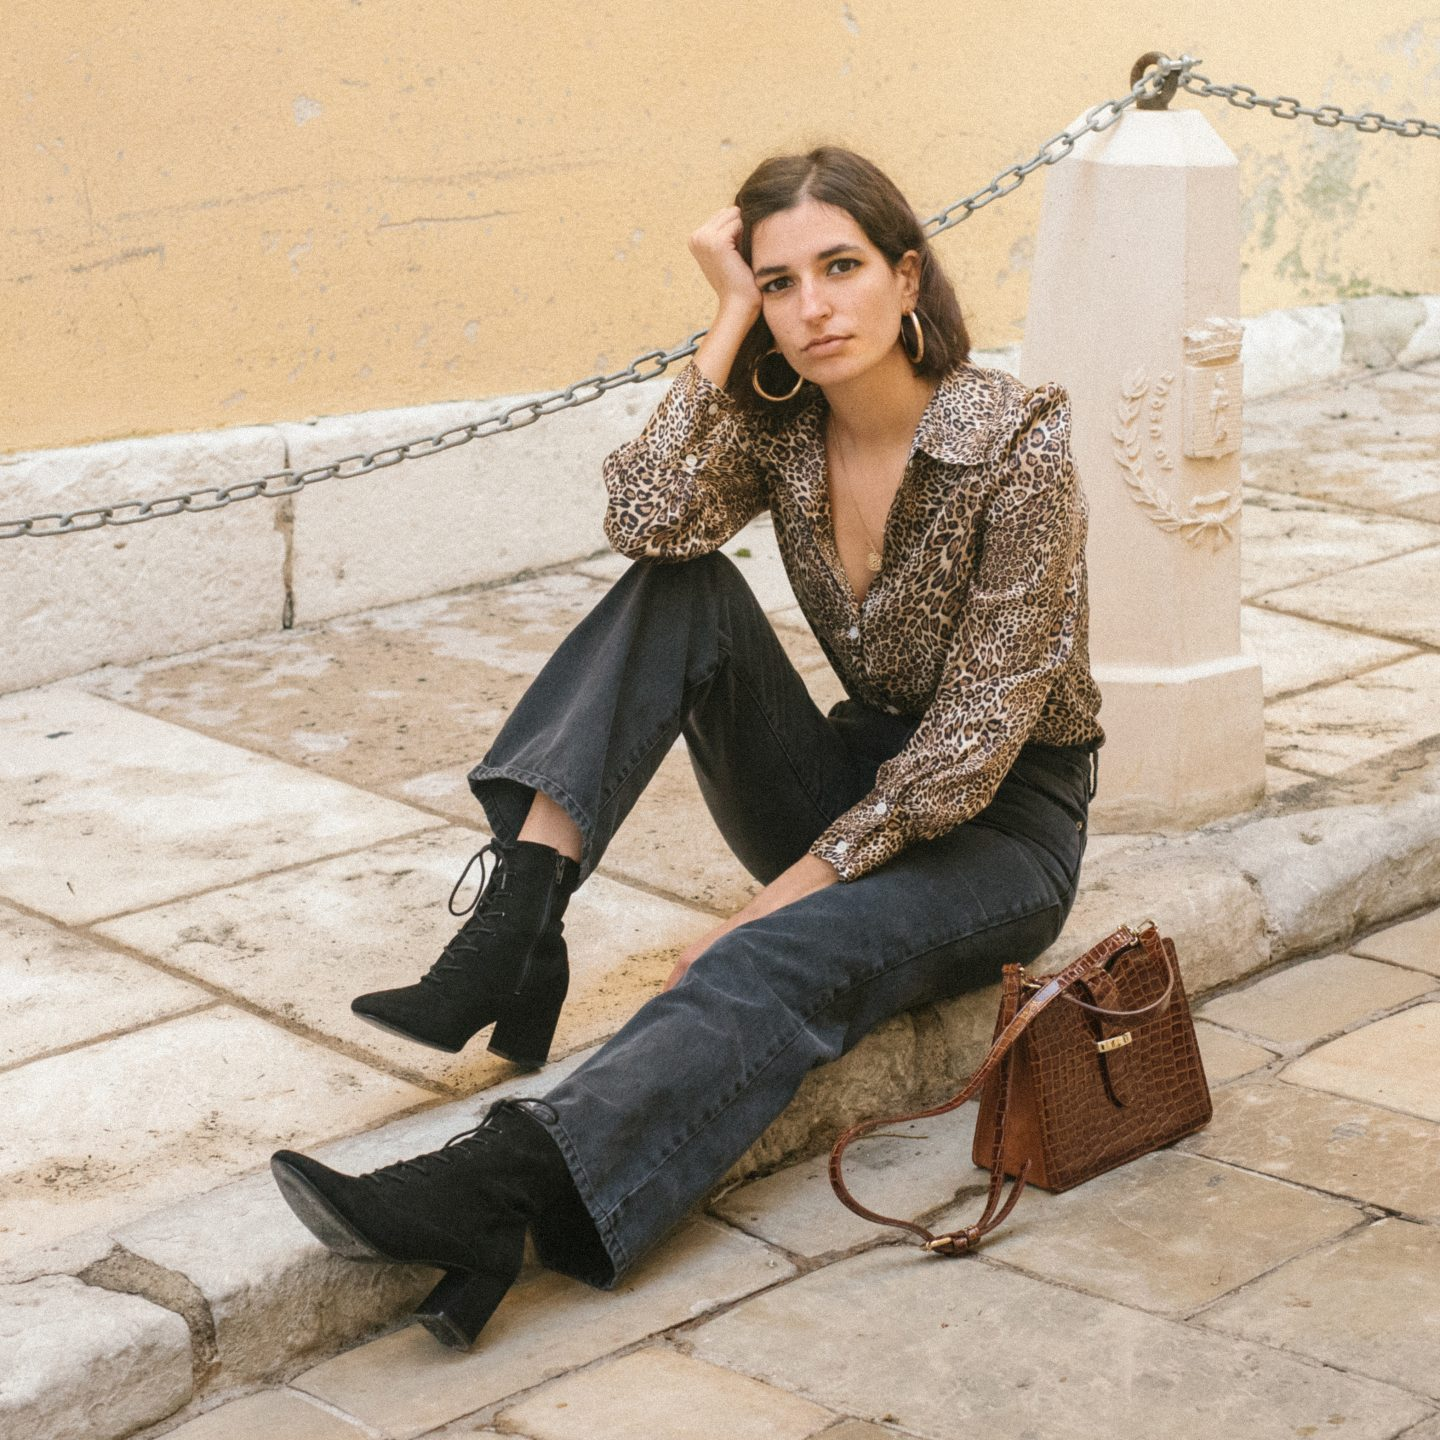 Taming the leopard trend for fall